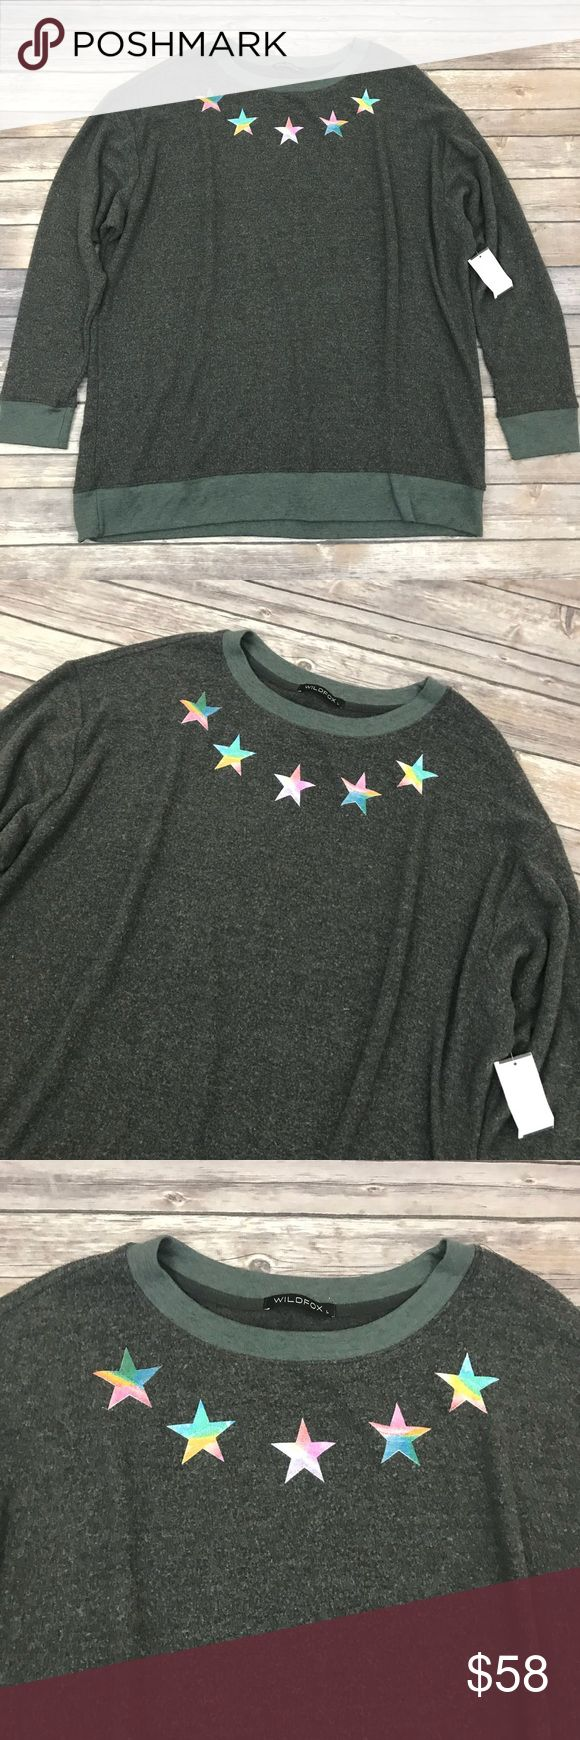 New Wildfox Rainbow Stars Pullover Sweater Wildfox Rainbow Stars Baggy Beach Jumper Pullover Sweater •New with tags •Size Large •Retails for $108  Check out my other listings- Nike, adidas, Michael Kors, Hunter Boots, Kate Spade, Miss Me, Rock Revival, Coach, Wildfox, Victoria's Slecret, PINK, True Religion, Ugg Australia, Free People and more! Wildfox Sweaters Crew & Scoop Necks